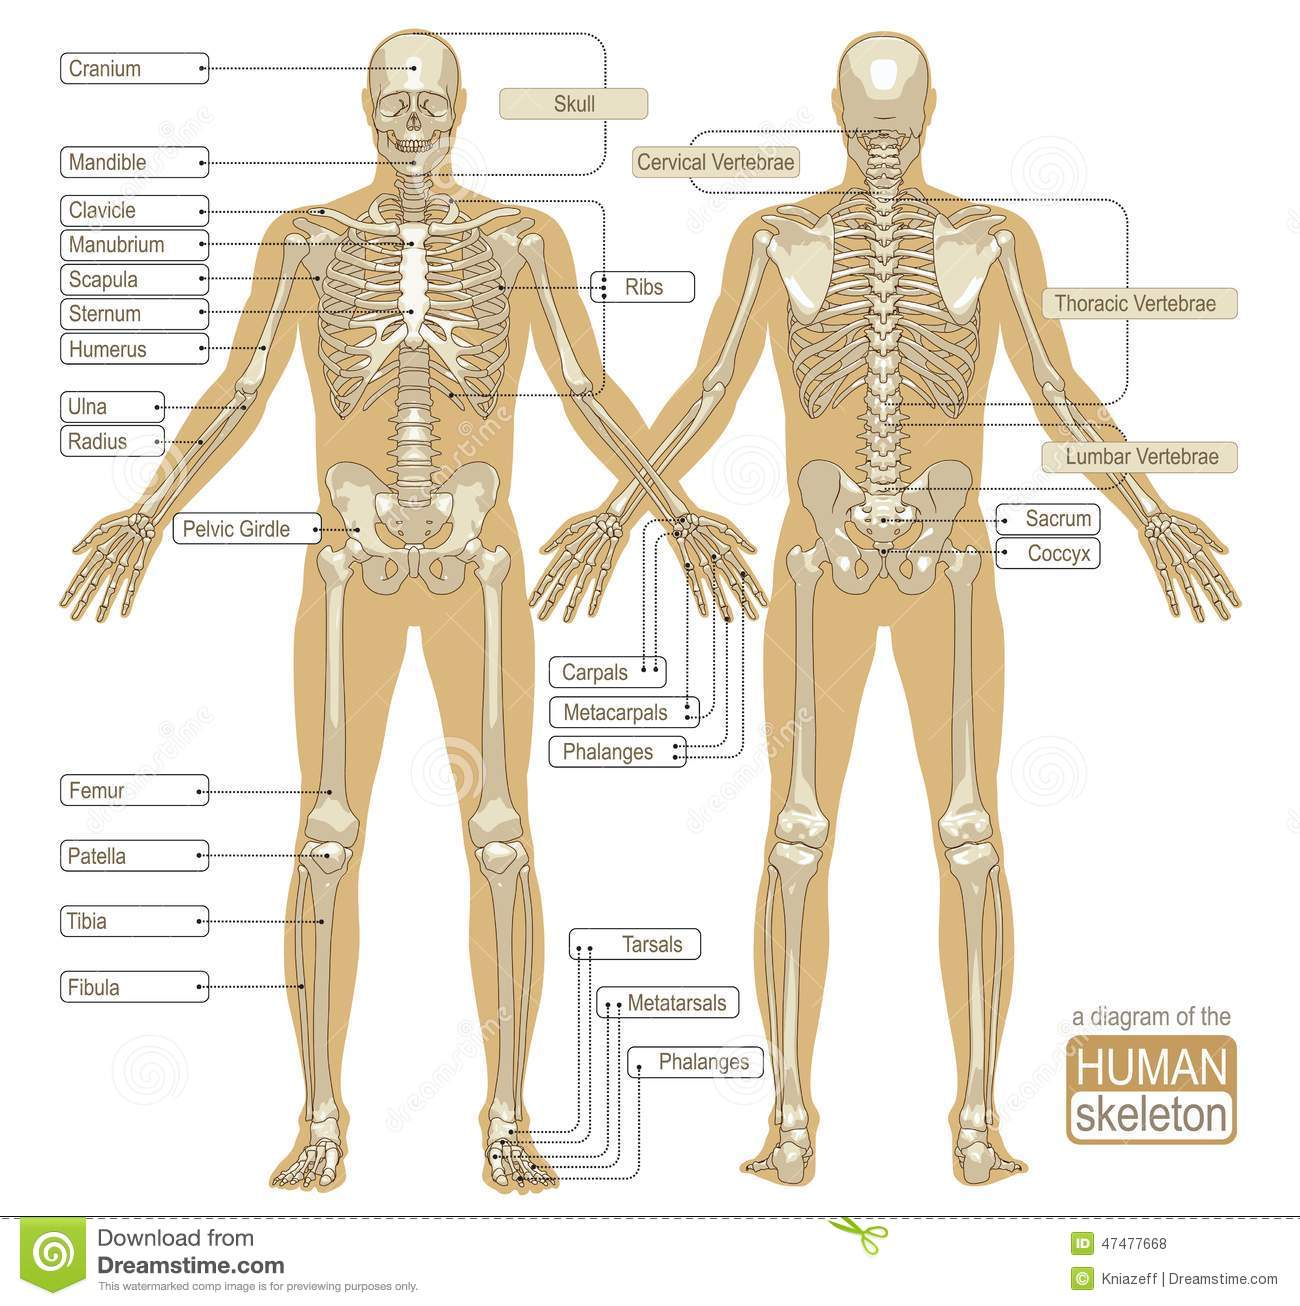 A diagram of the human skeleton stock vector illustration of download a diagram of the human skeleton stock vector illustration of learning pelvis ccuart Choice Image